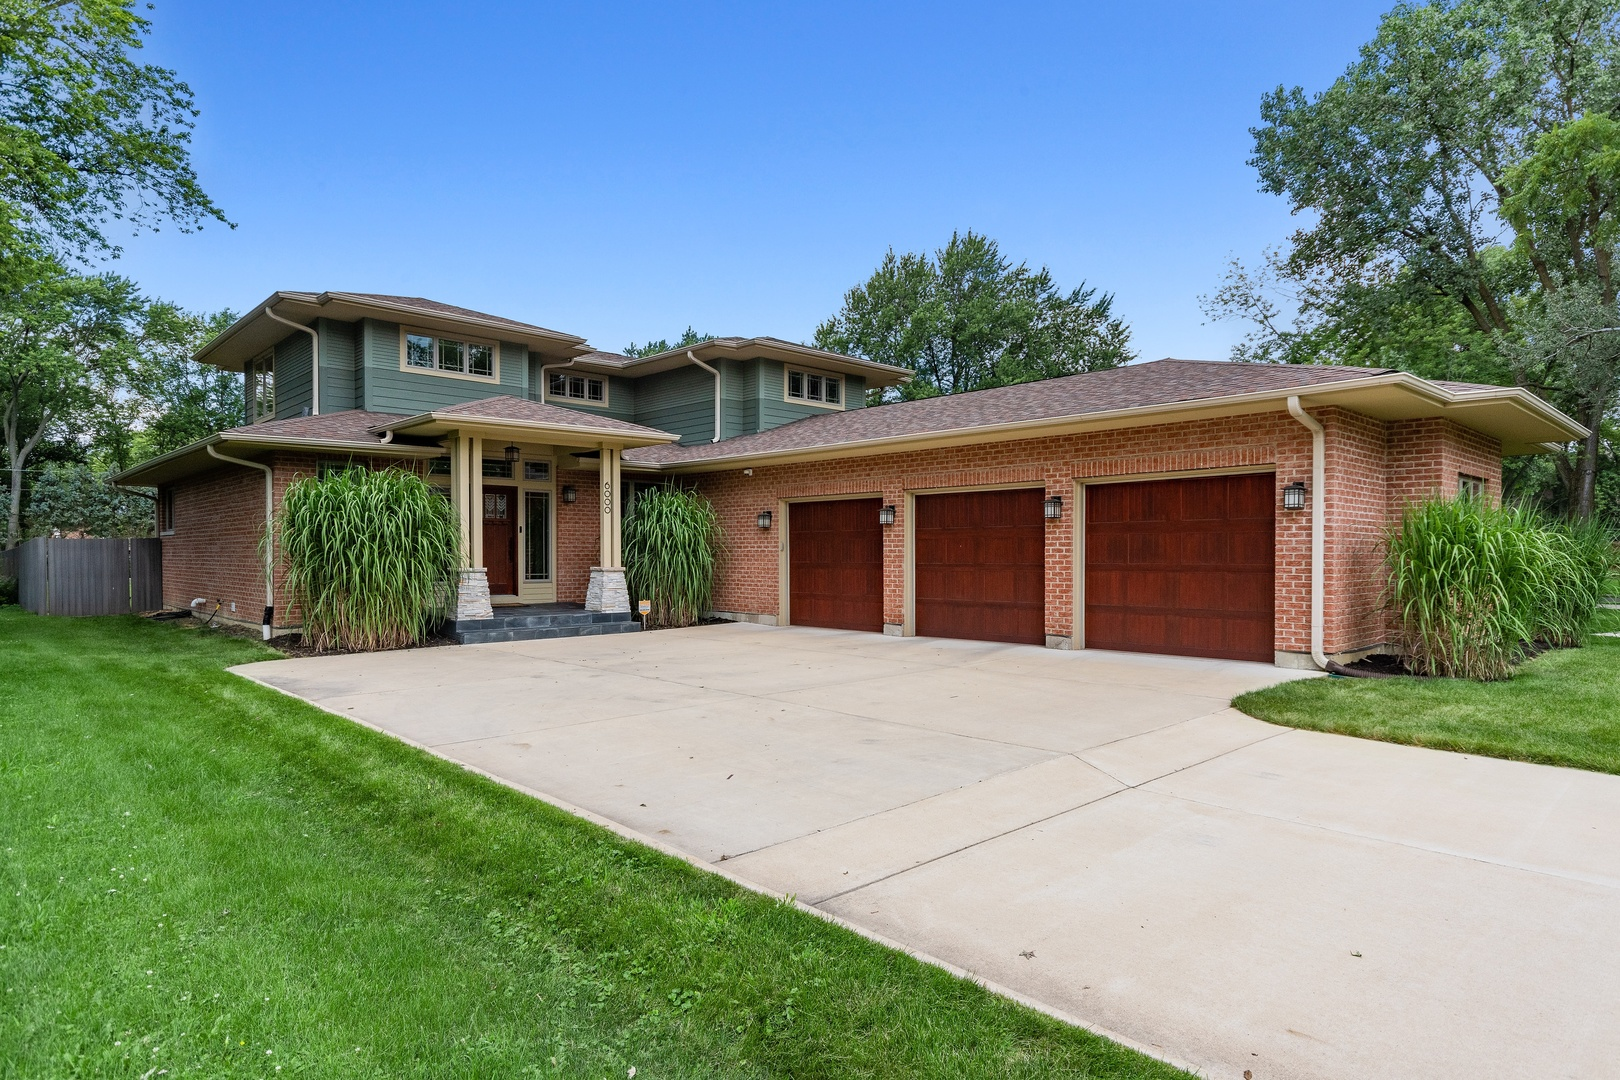 Photo for 6000 Pershing Avenue, DOWNERS GROVE, IL 60516 (MLS # 10506363)